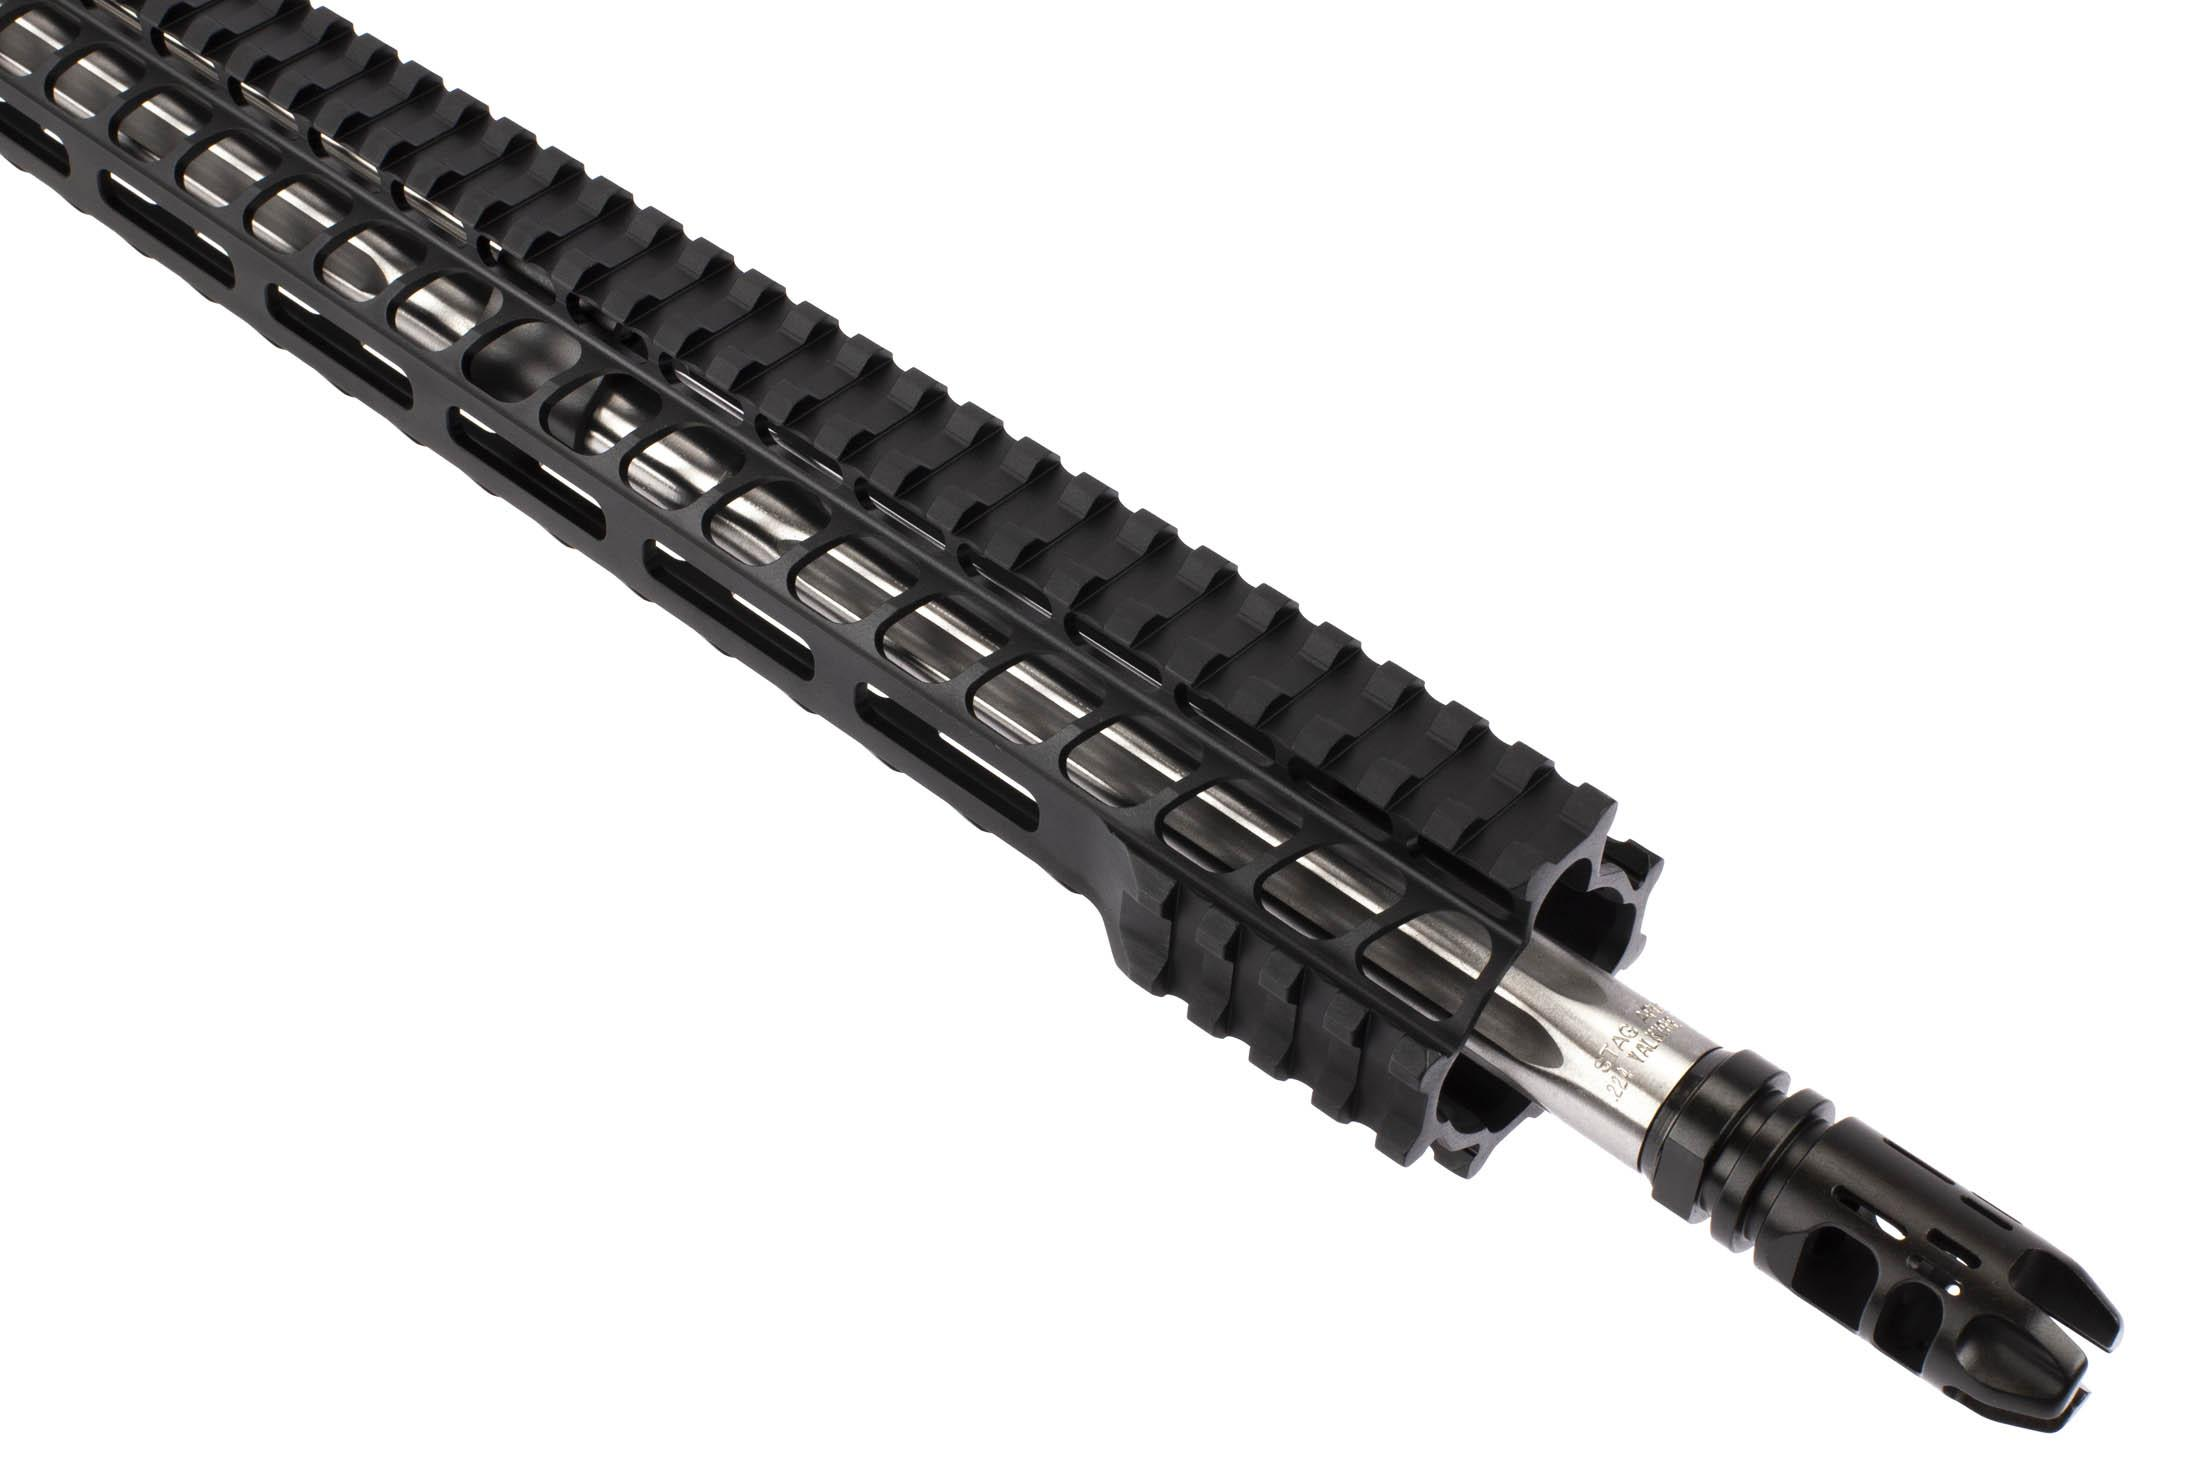 Stag Arms .224 Valkyrie STAG-15 with 18in barrel is threaded 1/2x28 with a VG6 Epsilon Compensator